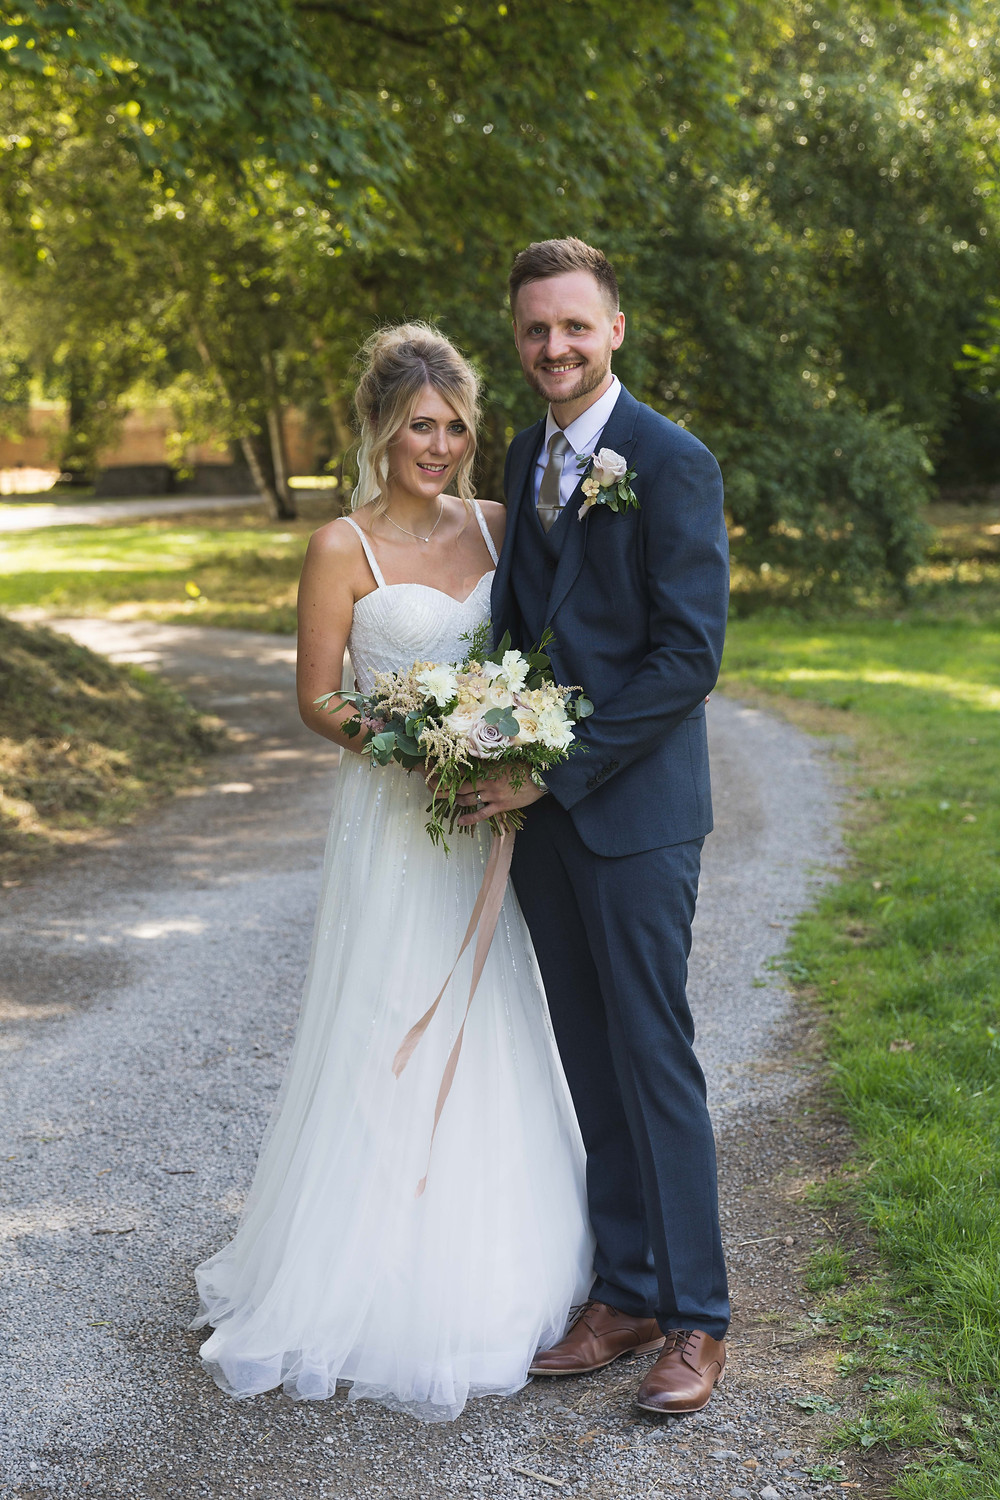 wedding photography: The Bride & Groom just after the ceremony